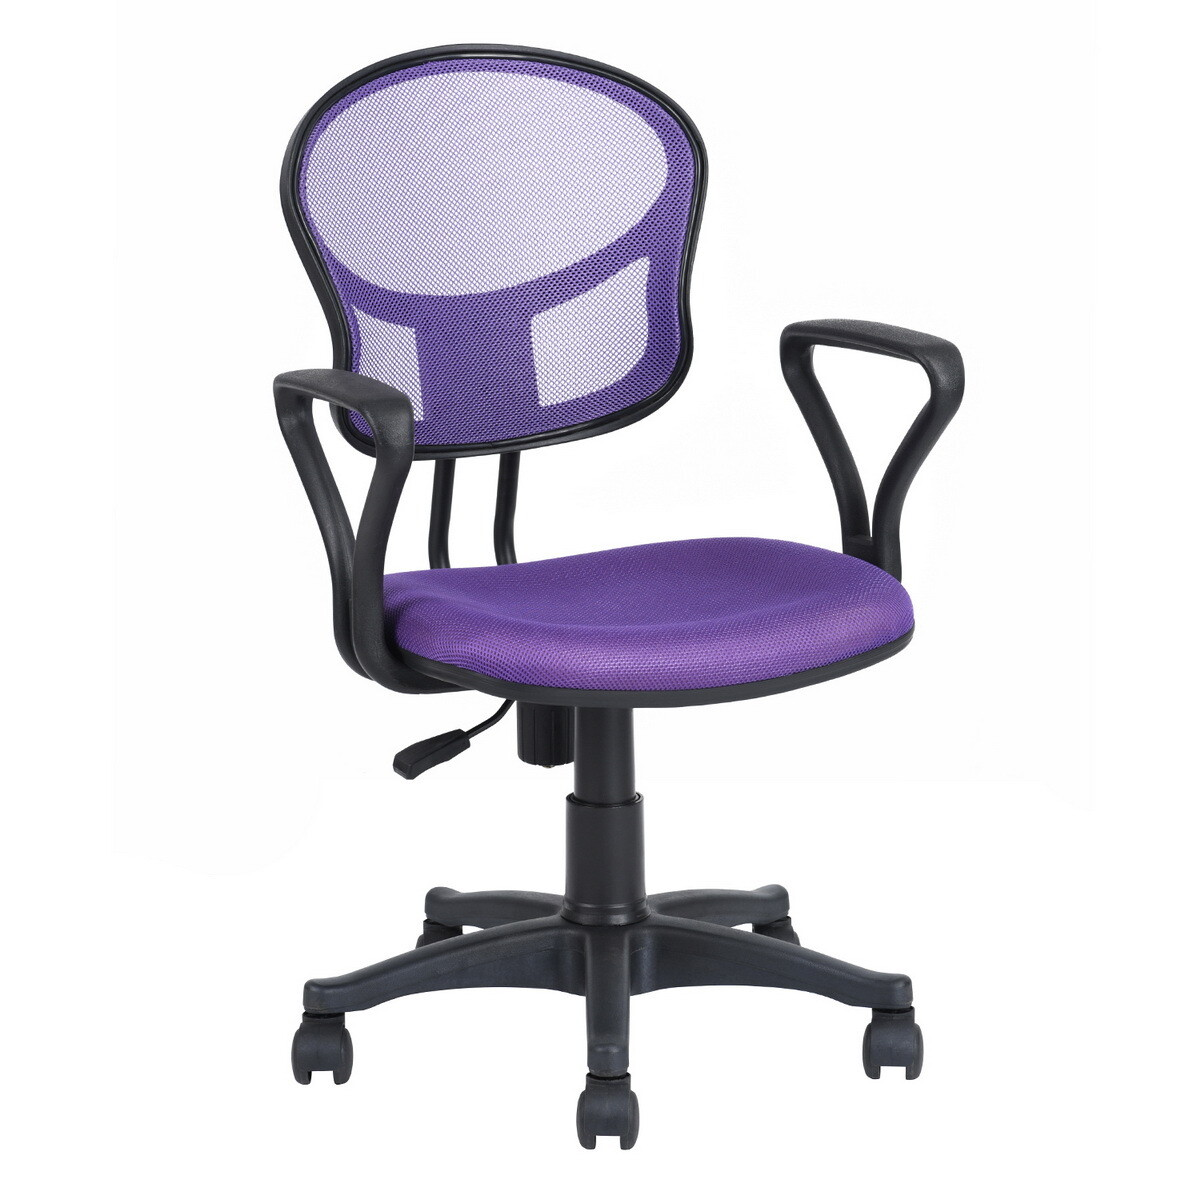 Adjustable Office Chair With Armrest (Fiona Purple)